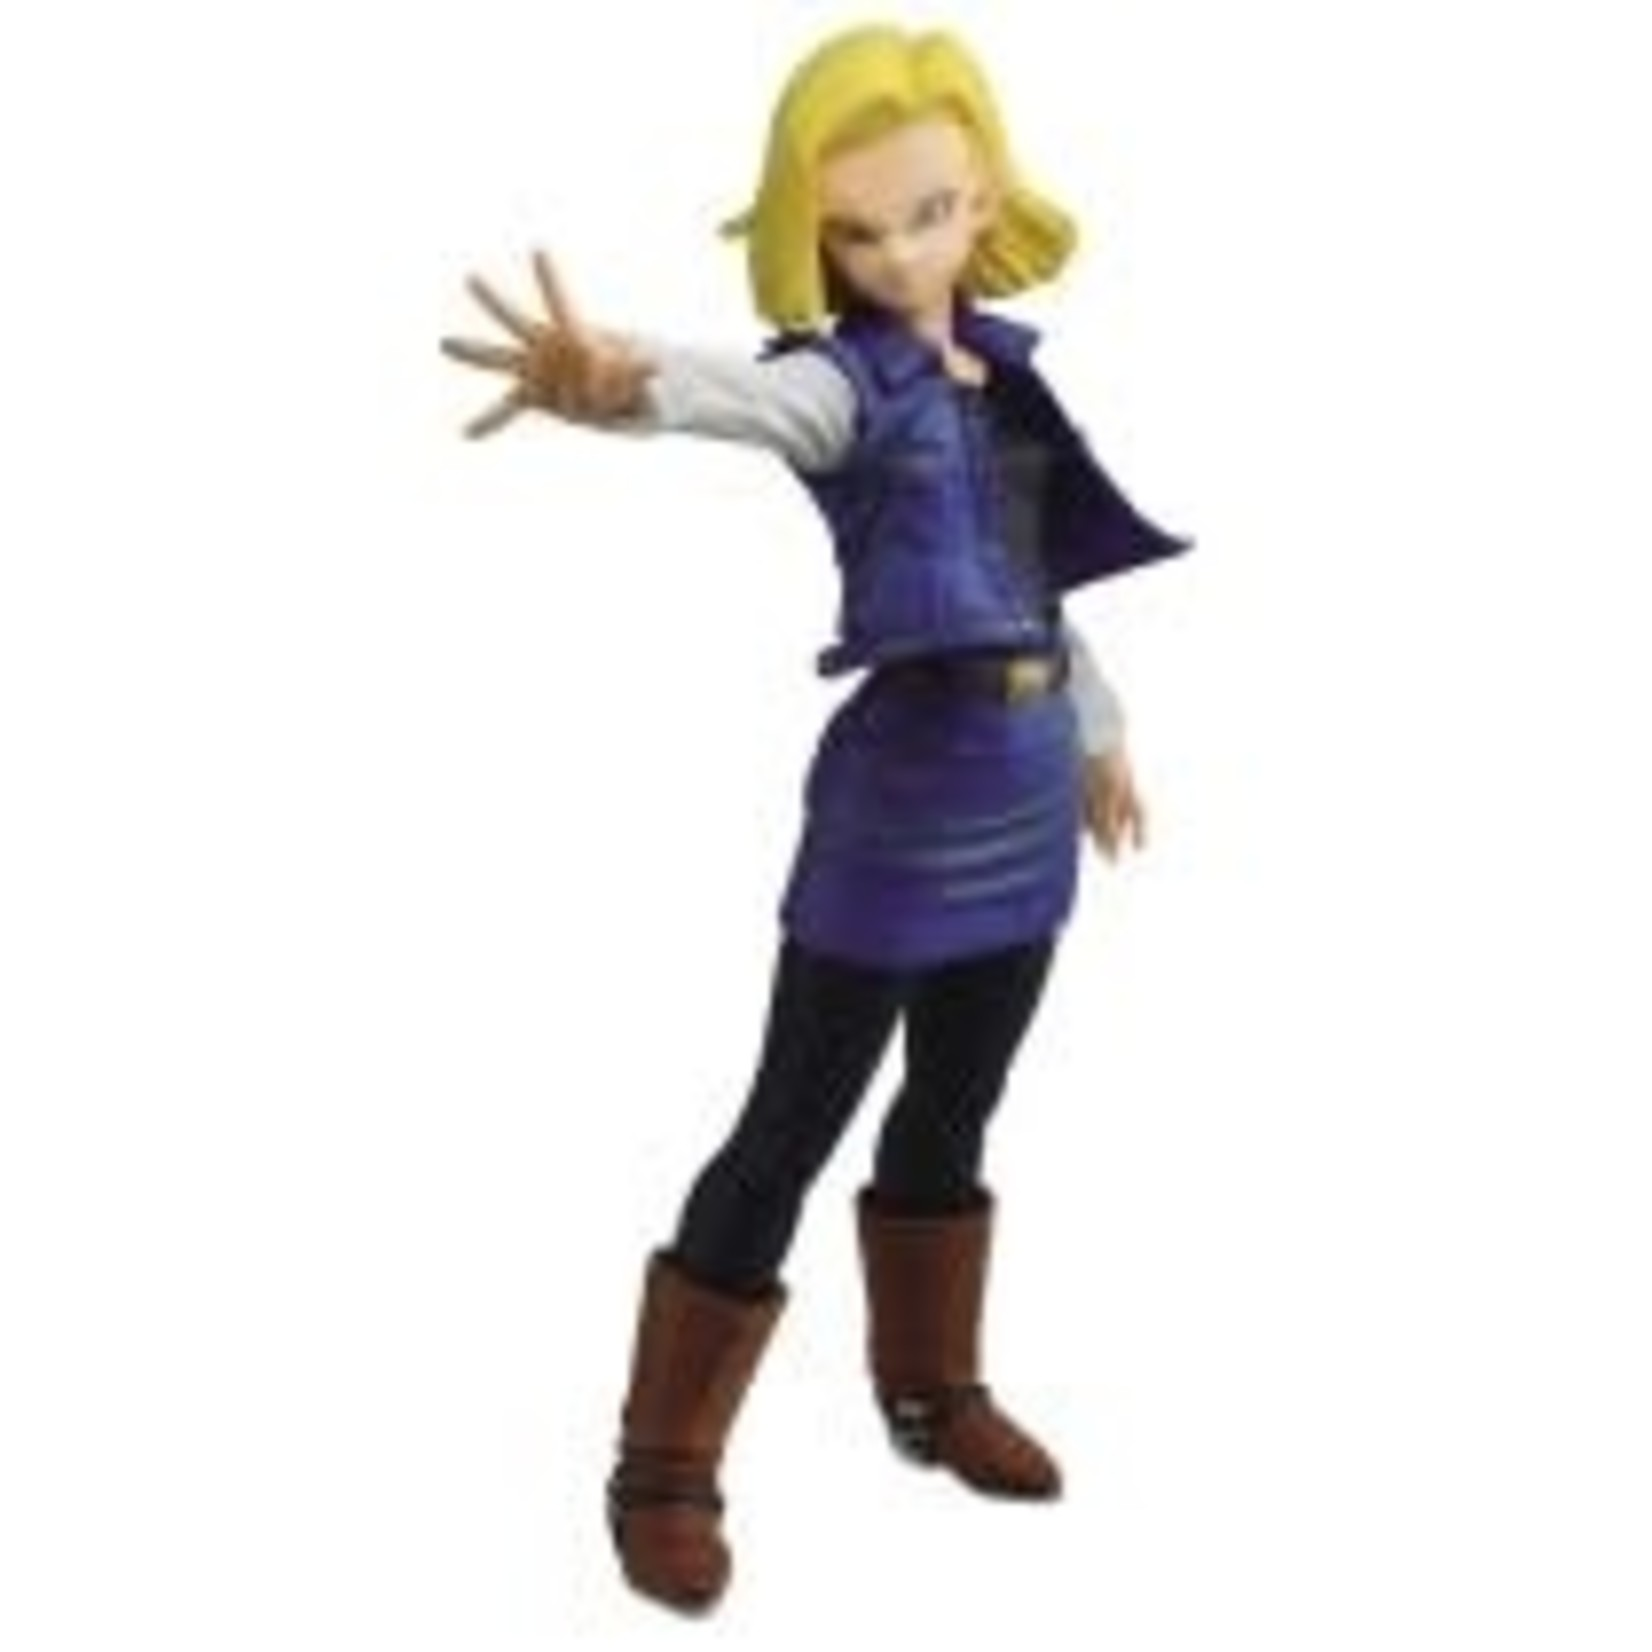 FIGURE-Dragon Ball Z Match Makers Android 18